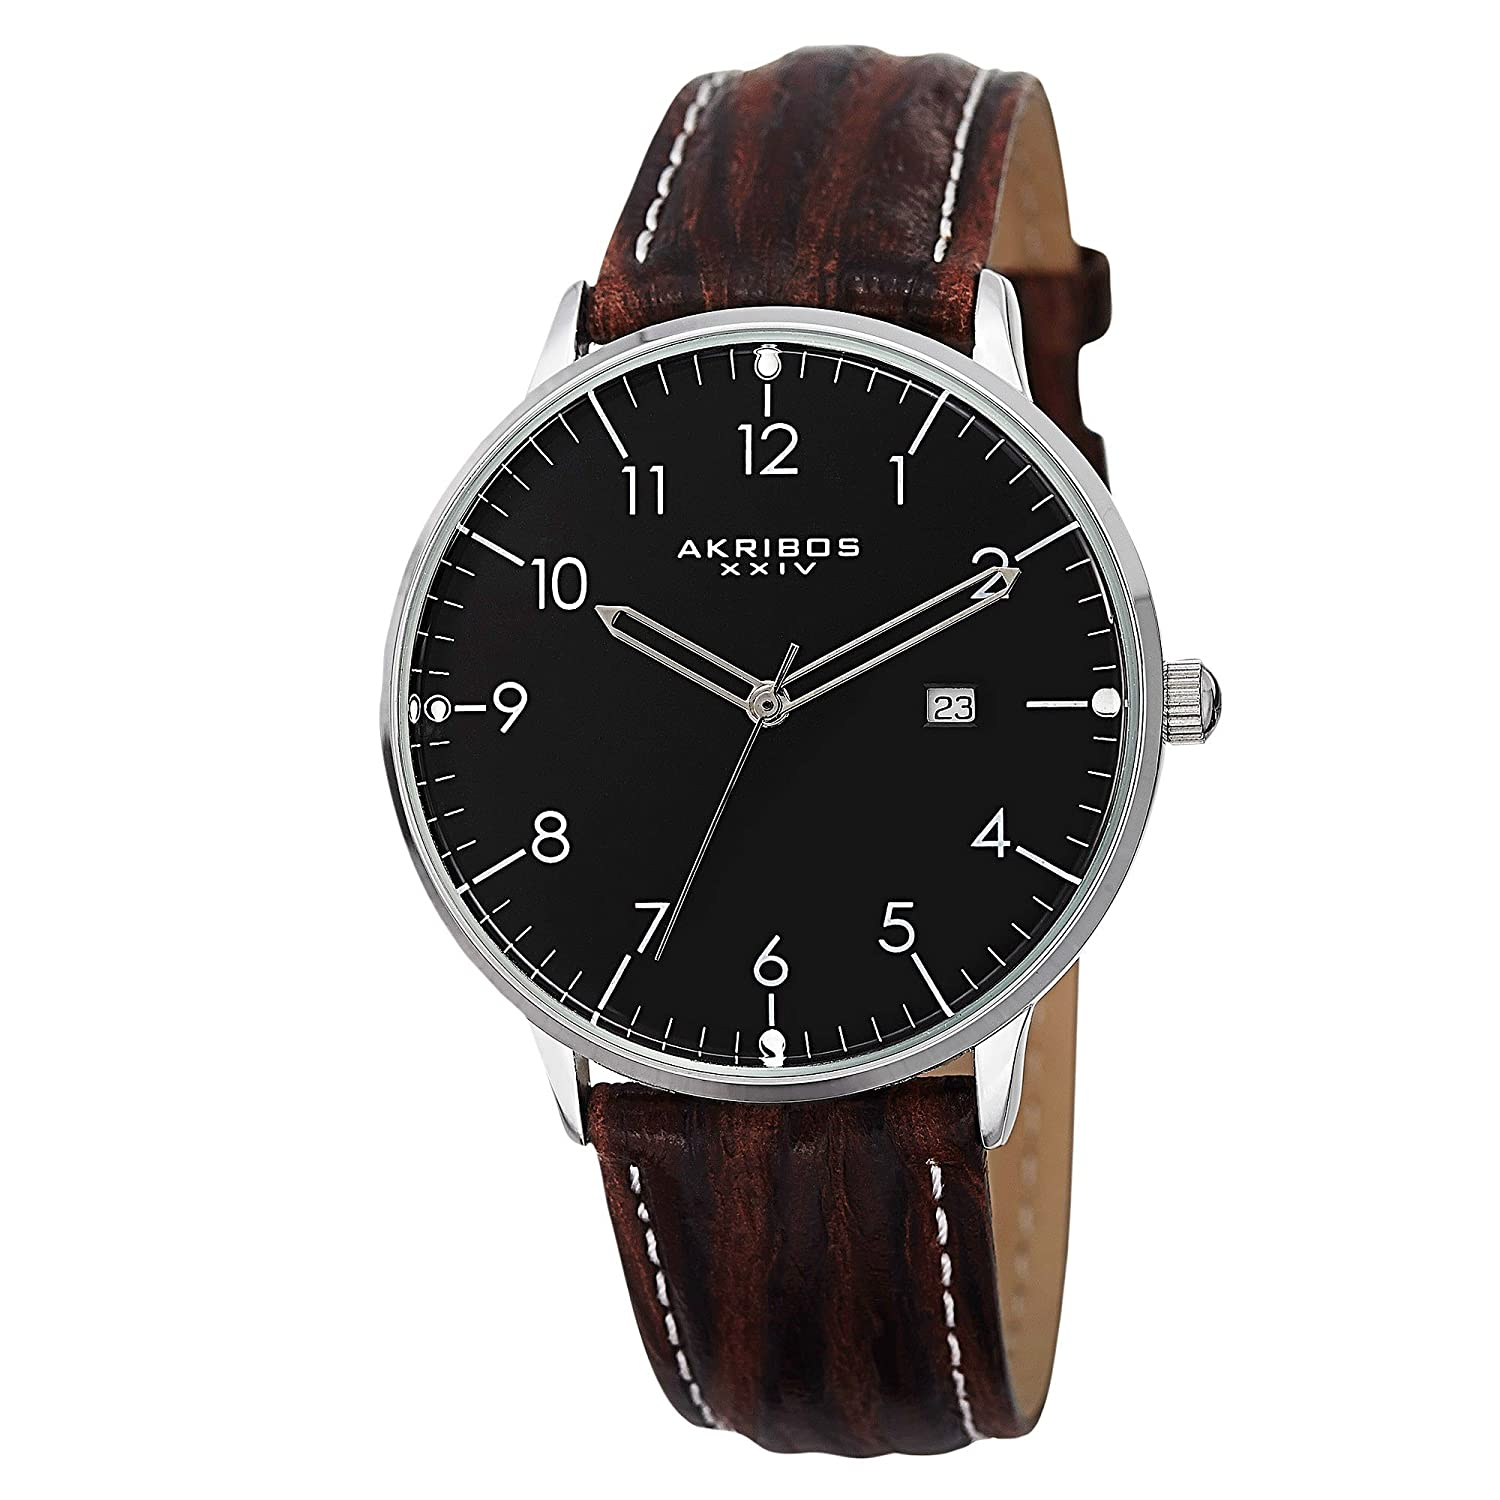 Pokupki customer account login/downloader - Amazon Com Akribos Xxiv Men S Ak715ssb Retro Stainless Steel Watch With Brown Leather Band Akribos Xxiv Watches